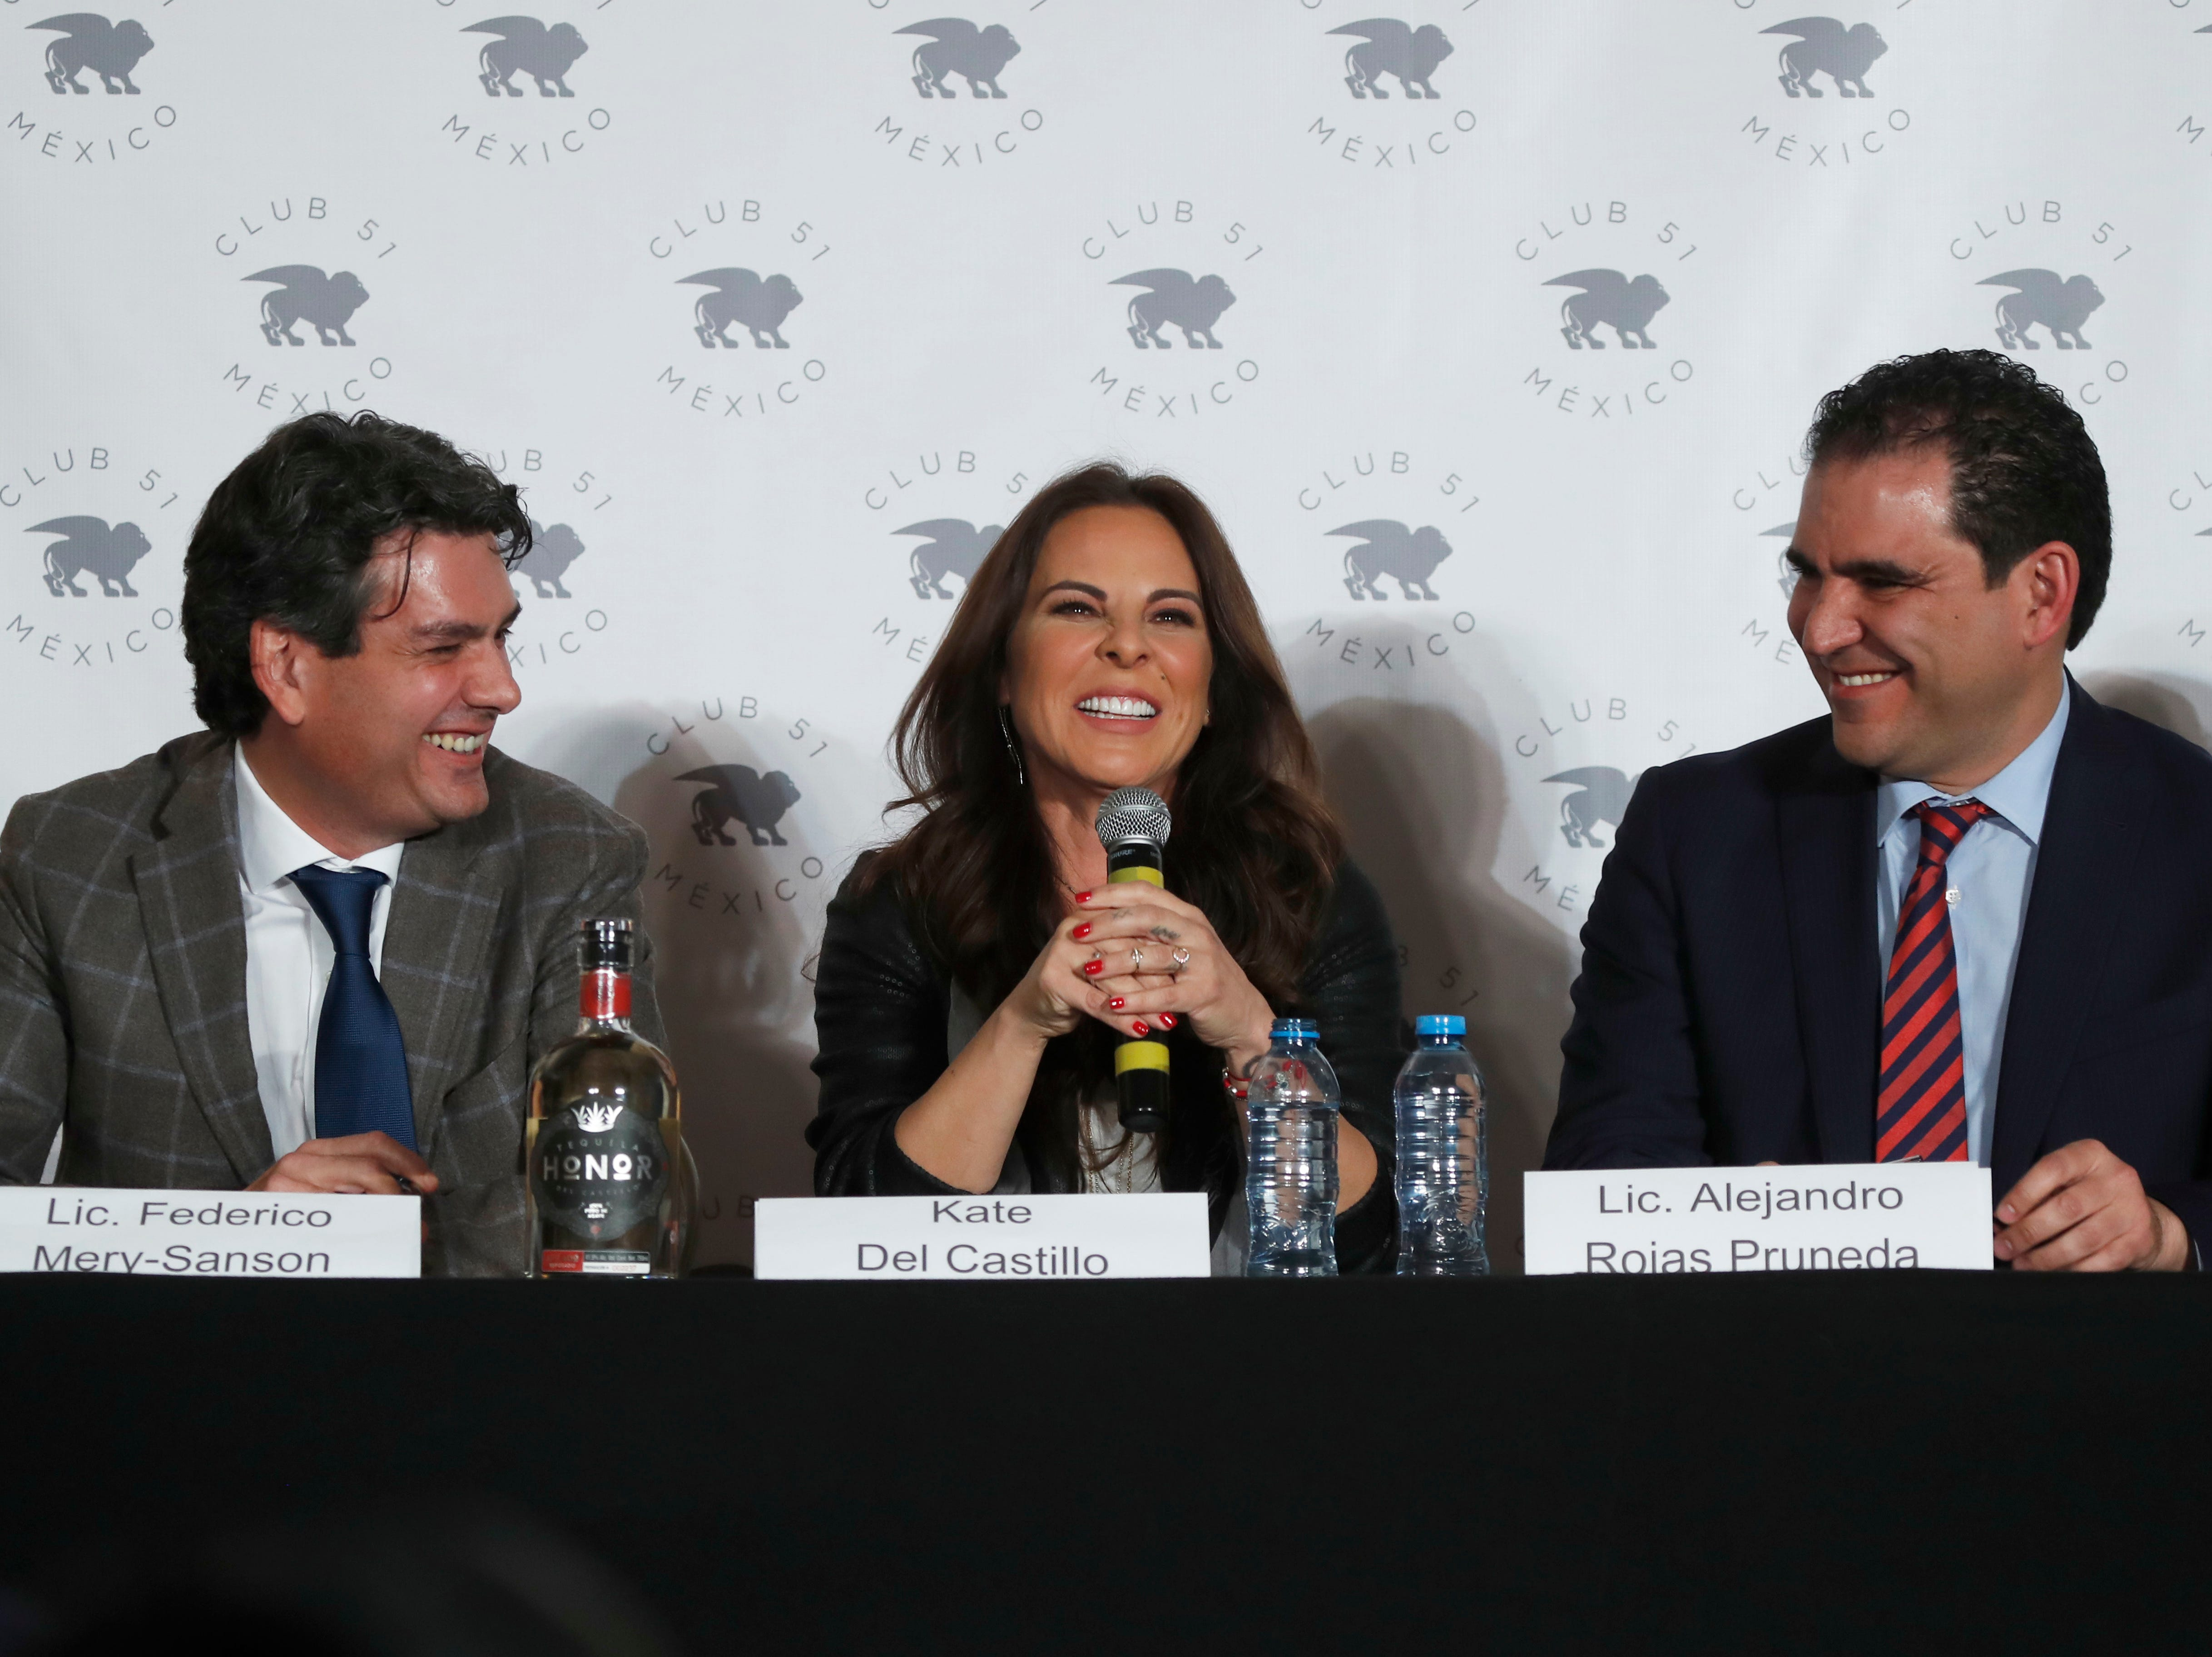 """Mexican actress Kate del Castillo gives a press conference, sitting between her lawyers, in Mexico City, Thursday, Dec. 20, 2018. Del Castillo spoke about events surrounding her 2015 meeting with Joaquin """"El Chapo"""" Guzman, a Mexican drug lord who at the time was hiding from authorities. When del Castillo met with Guzman, she said it was with the intent to make a film about his life."""